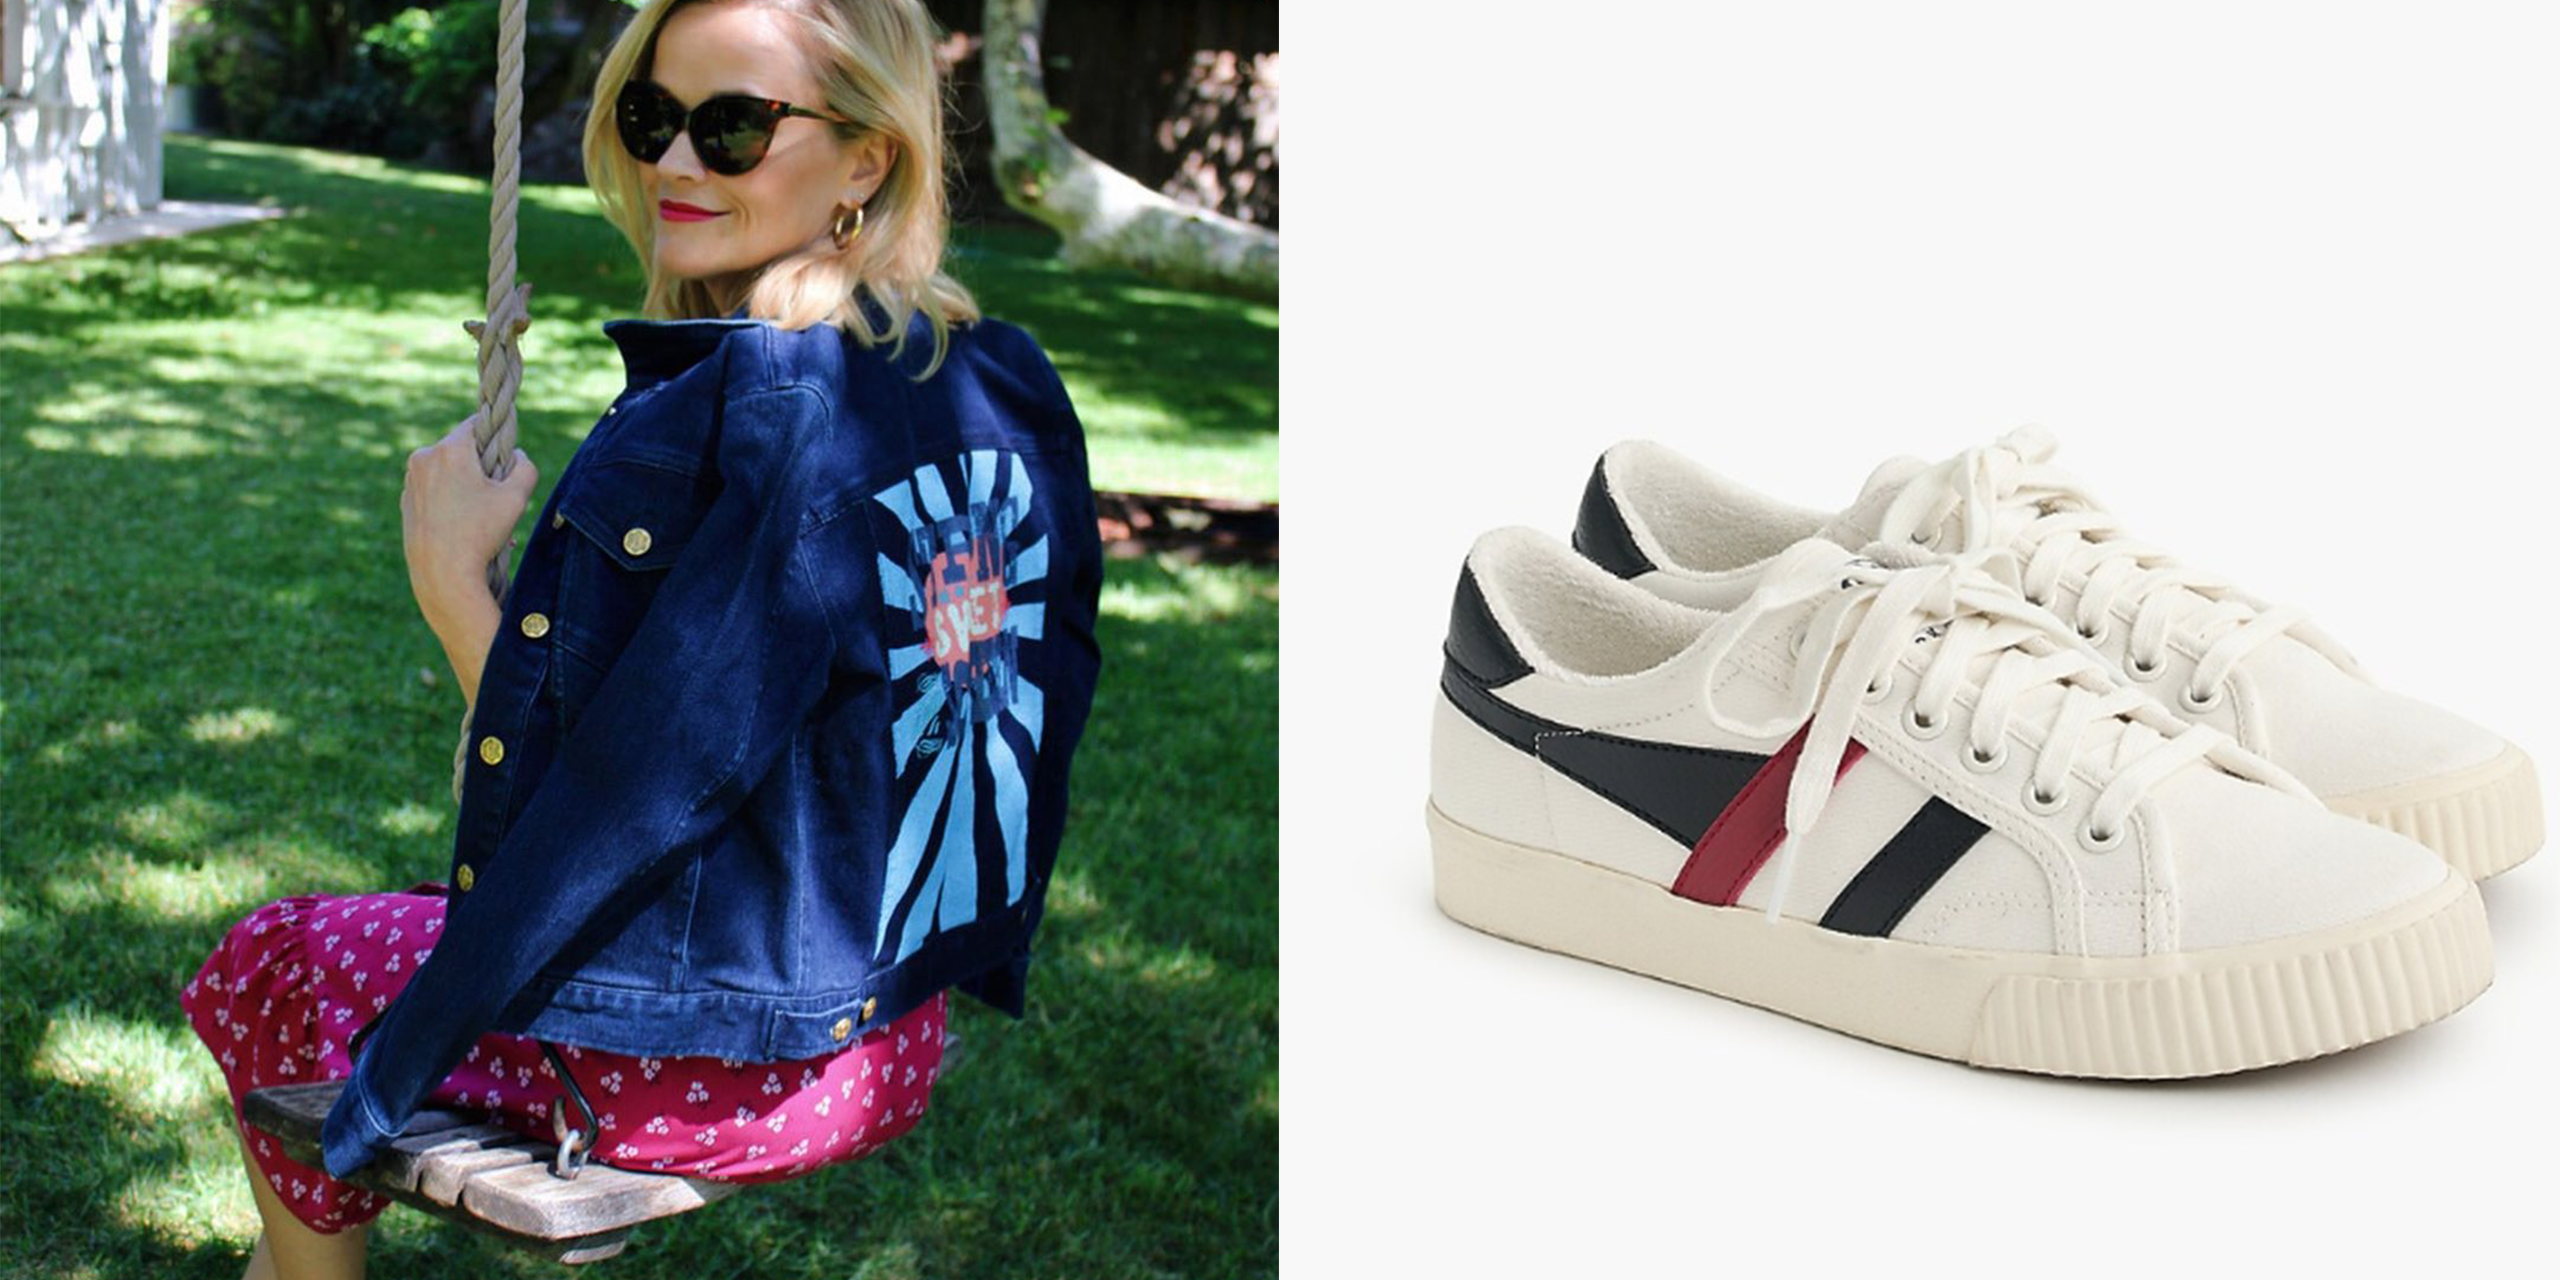 Gola Mark Cox Sneakers for $65 at J.Crew